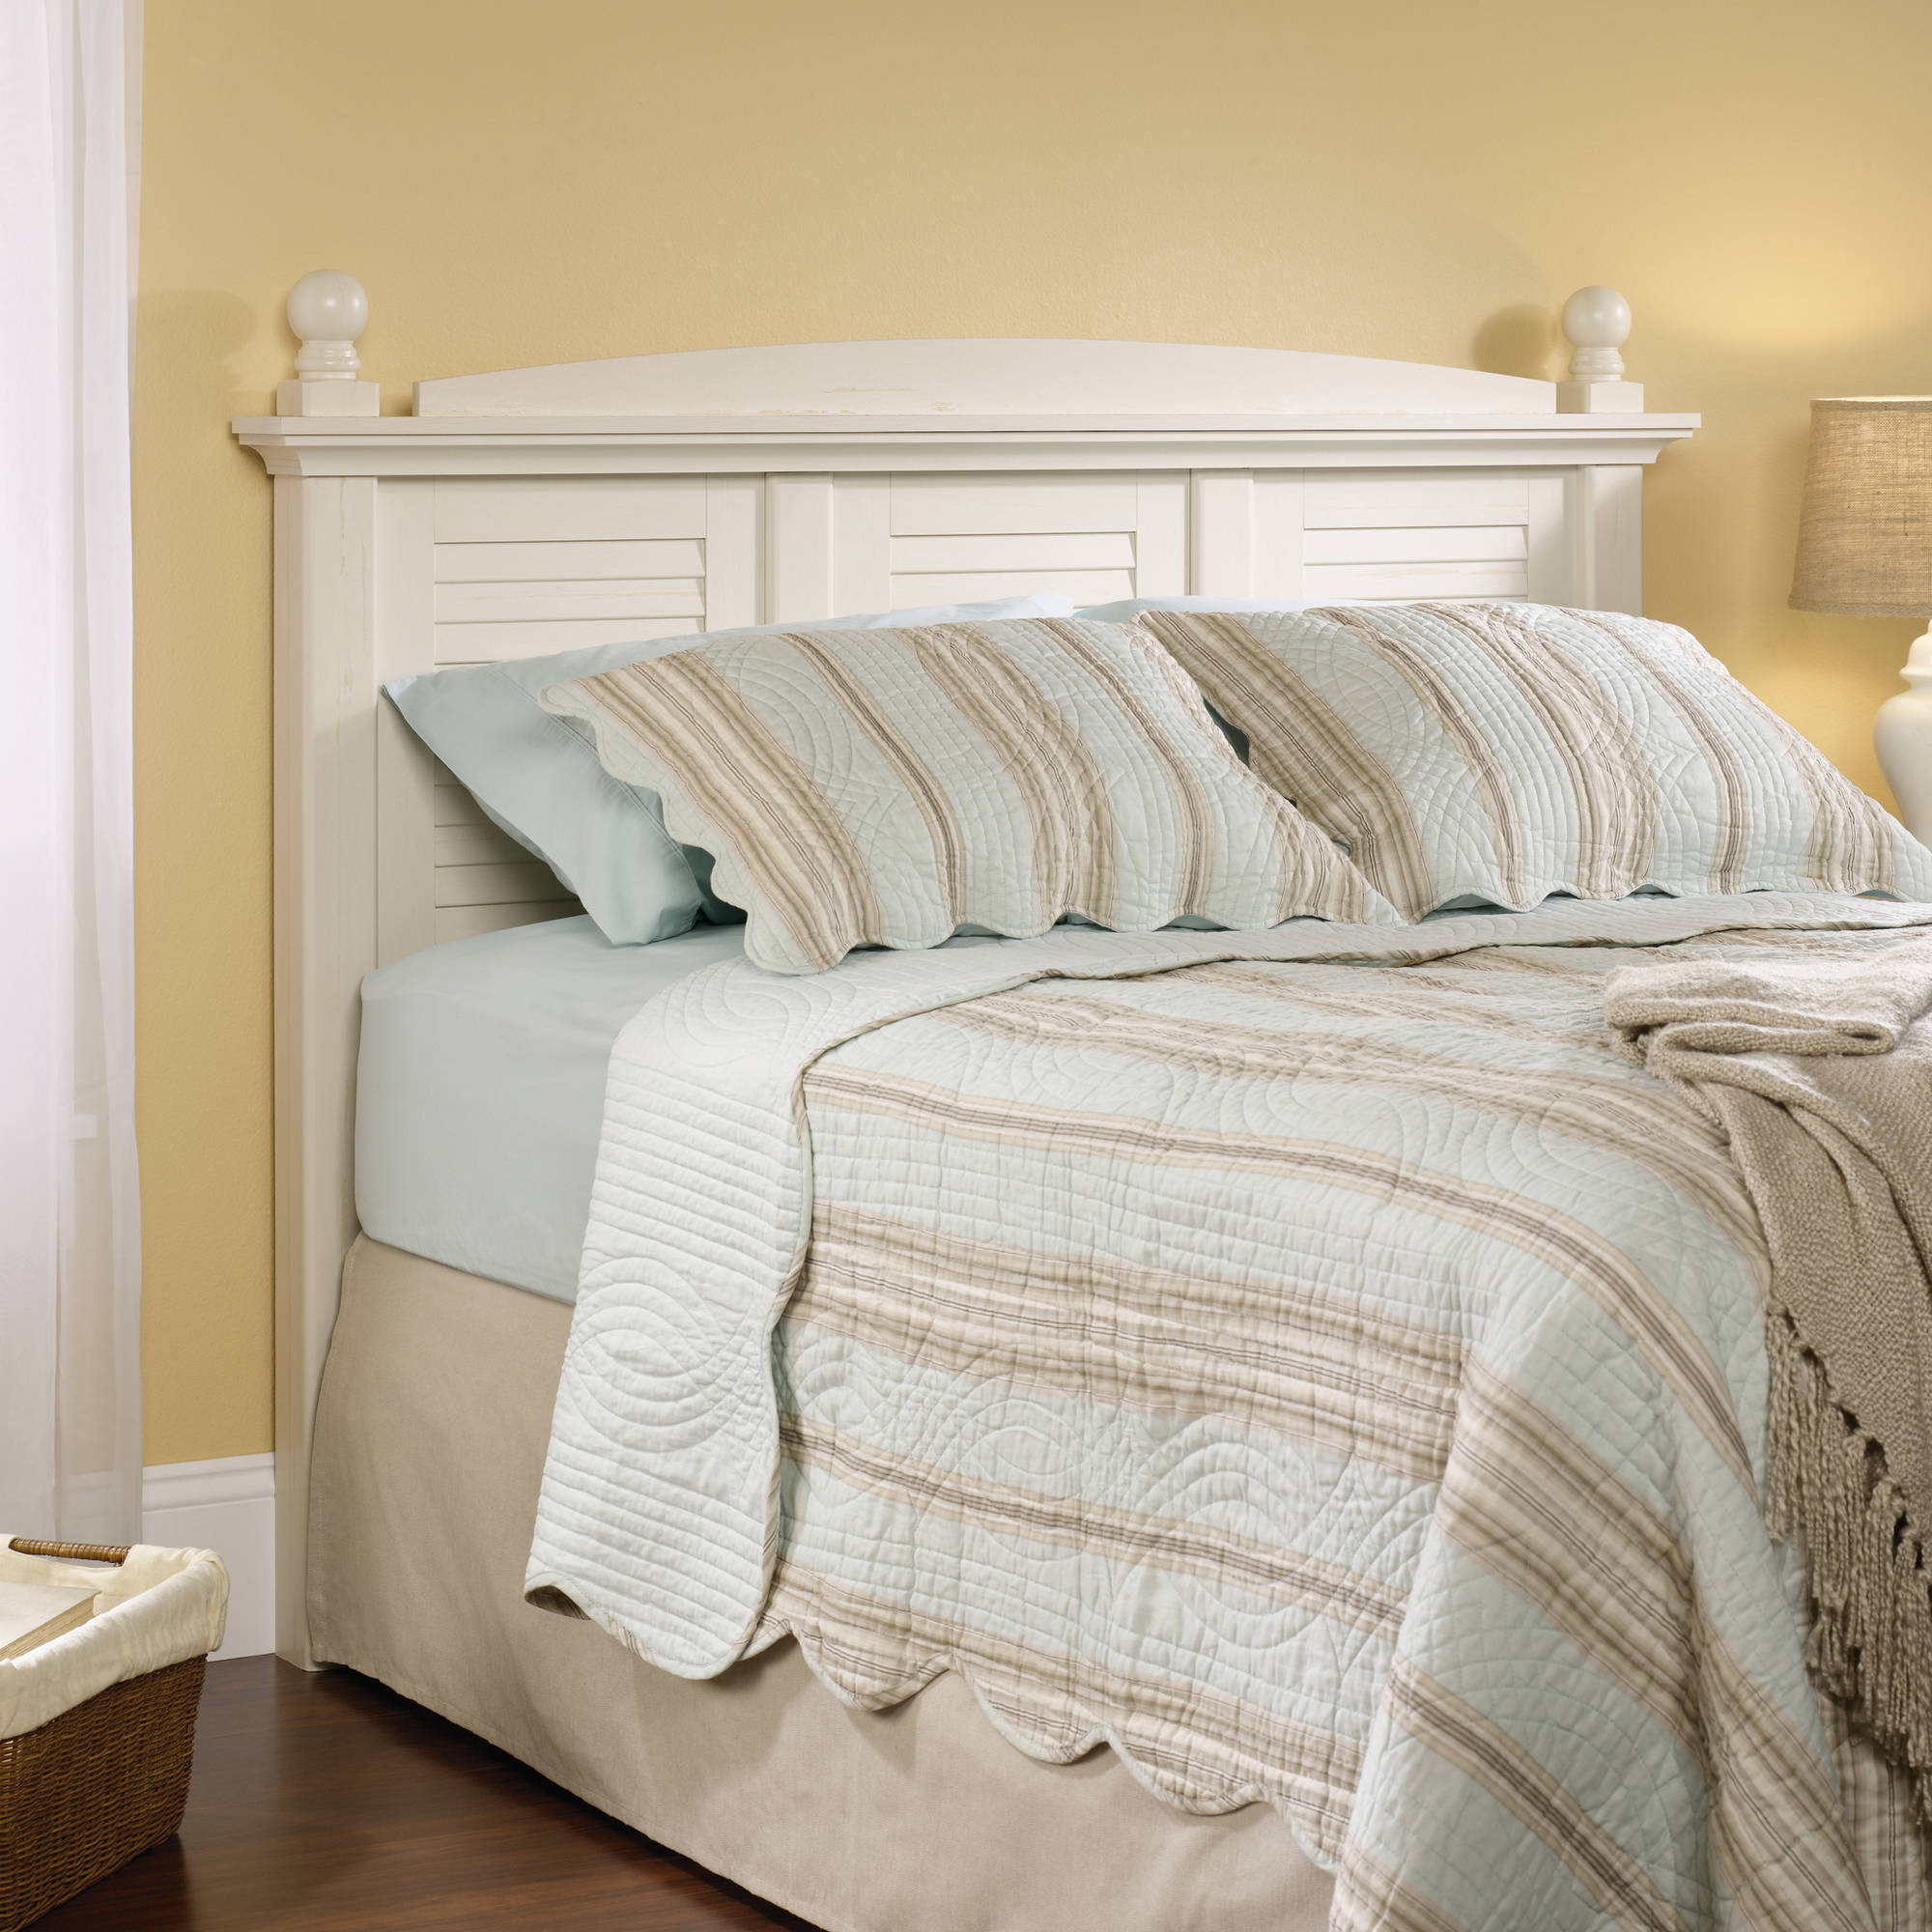 Sauder Harbor View Full / Queen Headboard, Antiqued White